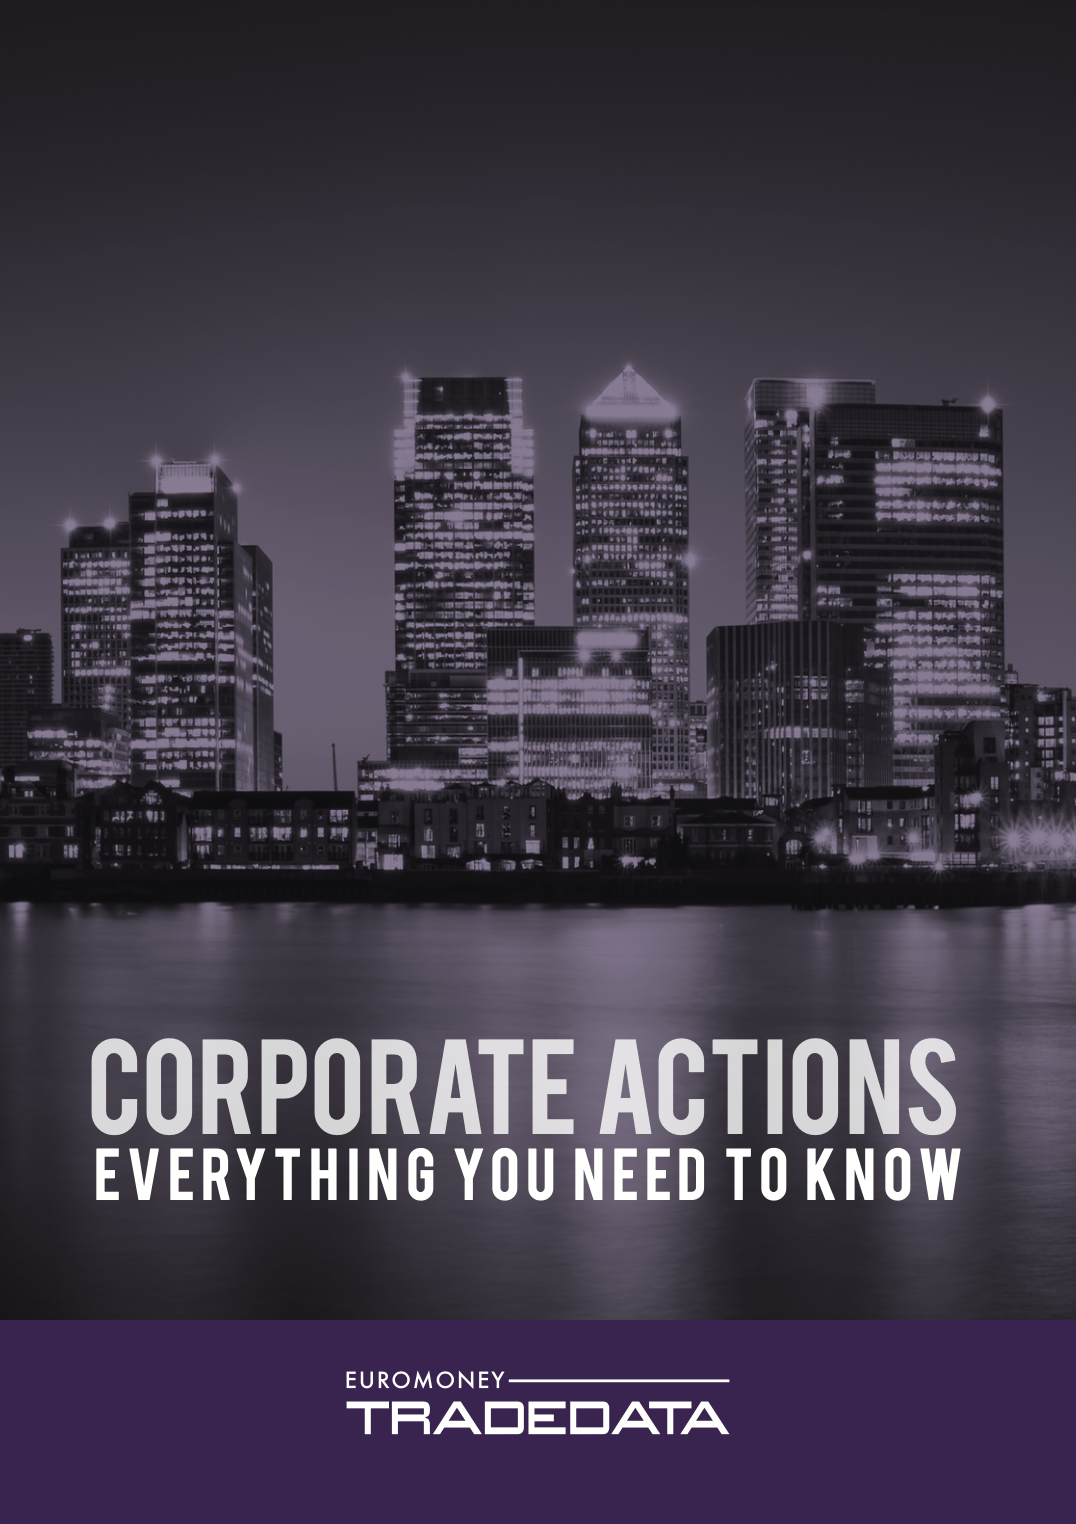 Everything you need to know about Corporate Actions